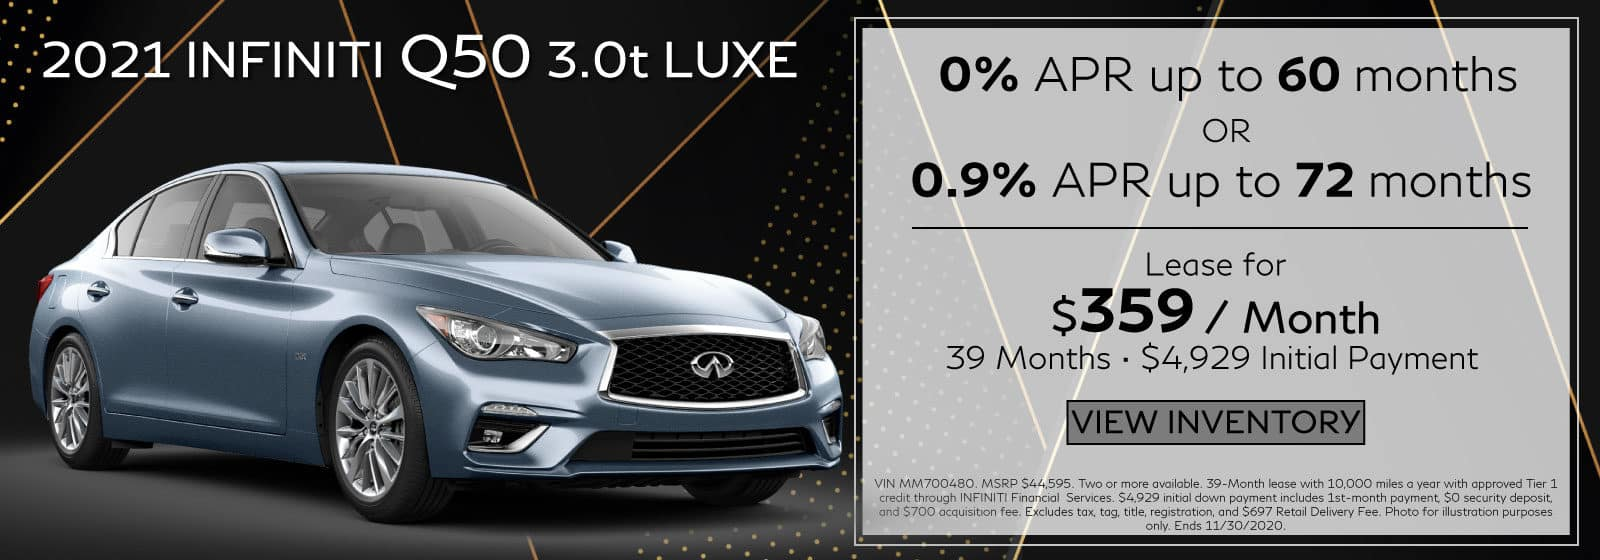 2021 Q50 3.0t LUXE. $359/mo for 39 months. $4,929 Initial Payment